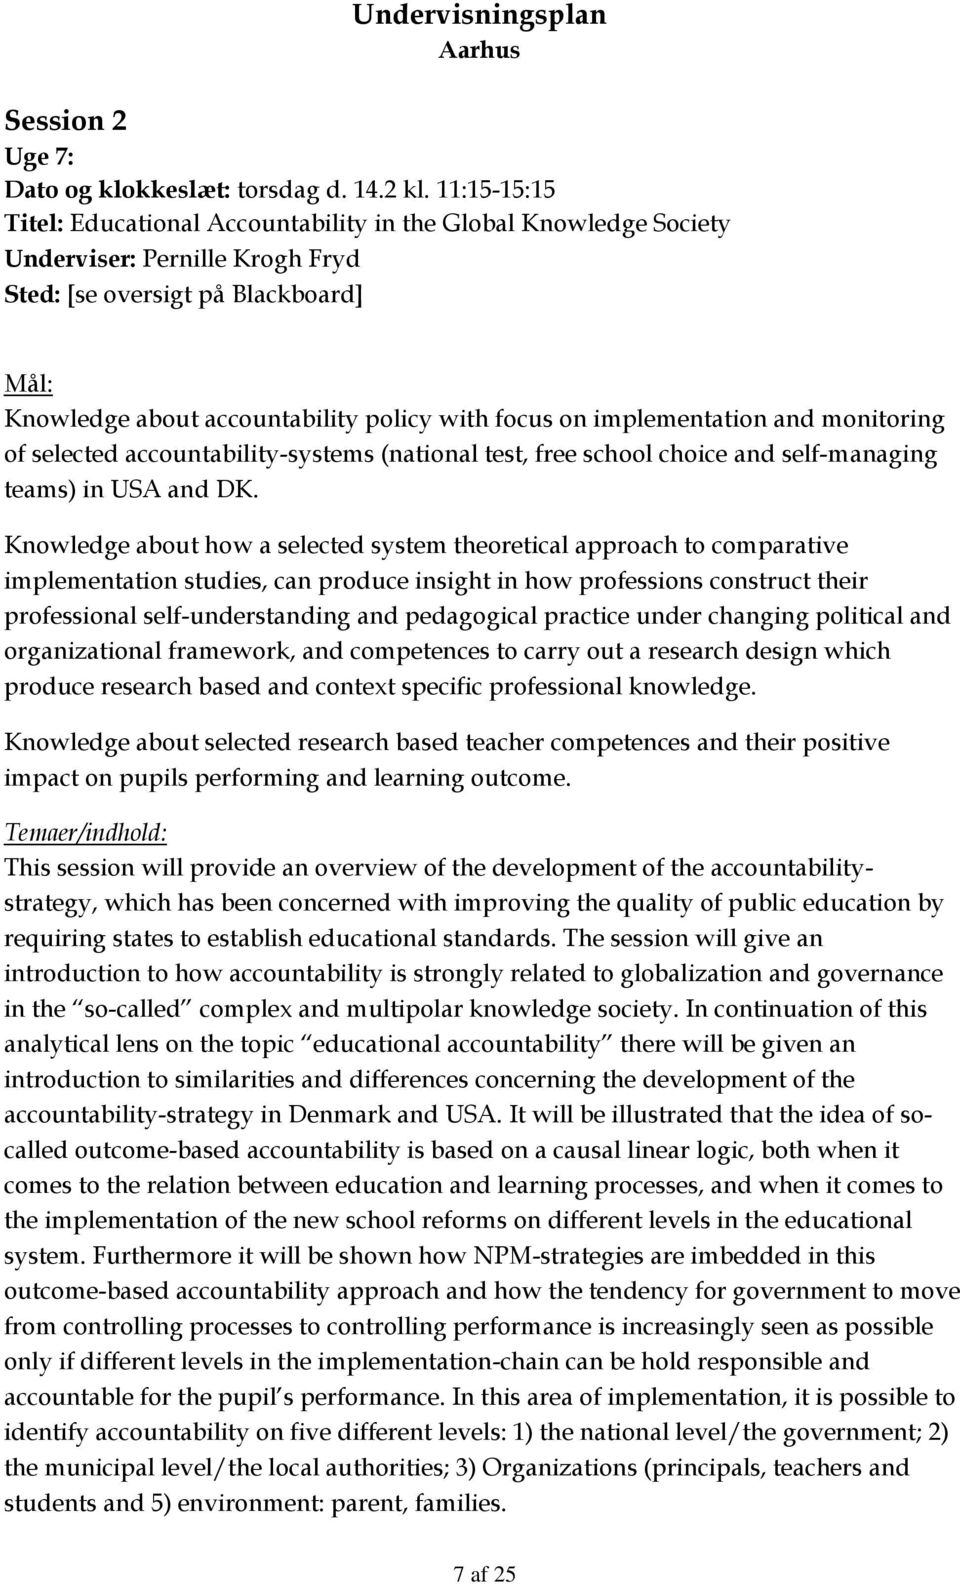 on implementation and monitoring of selected accountability-systems (national test, free school choice and self-managing teams) in USA and DK.